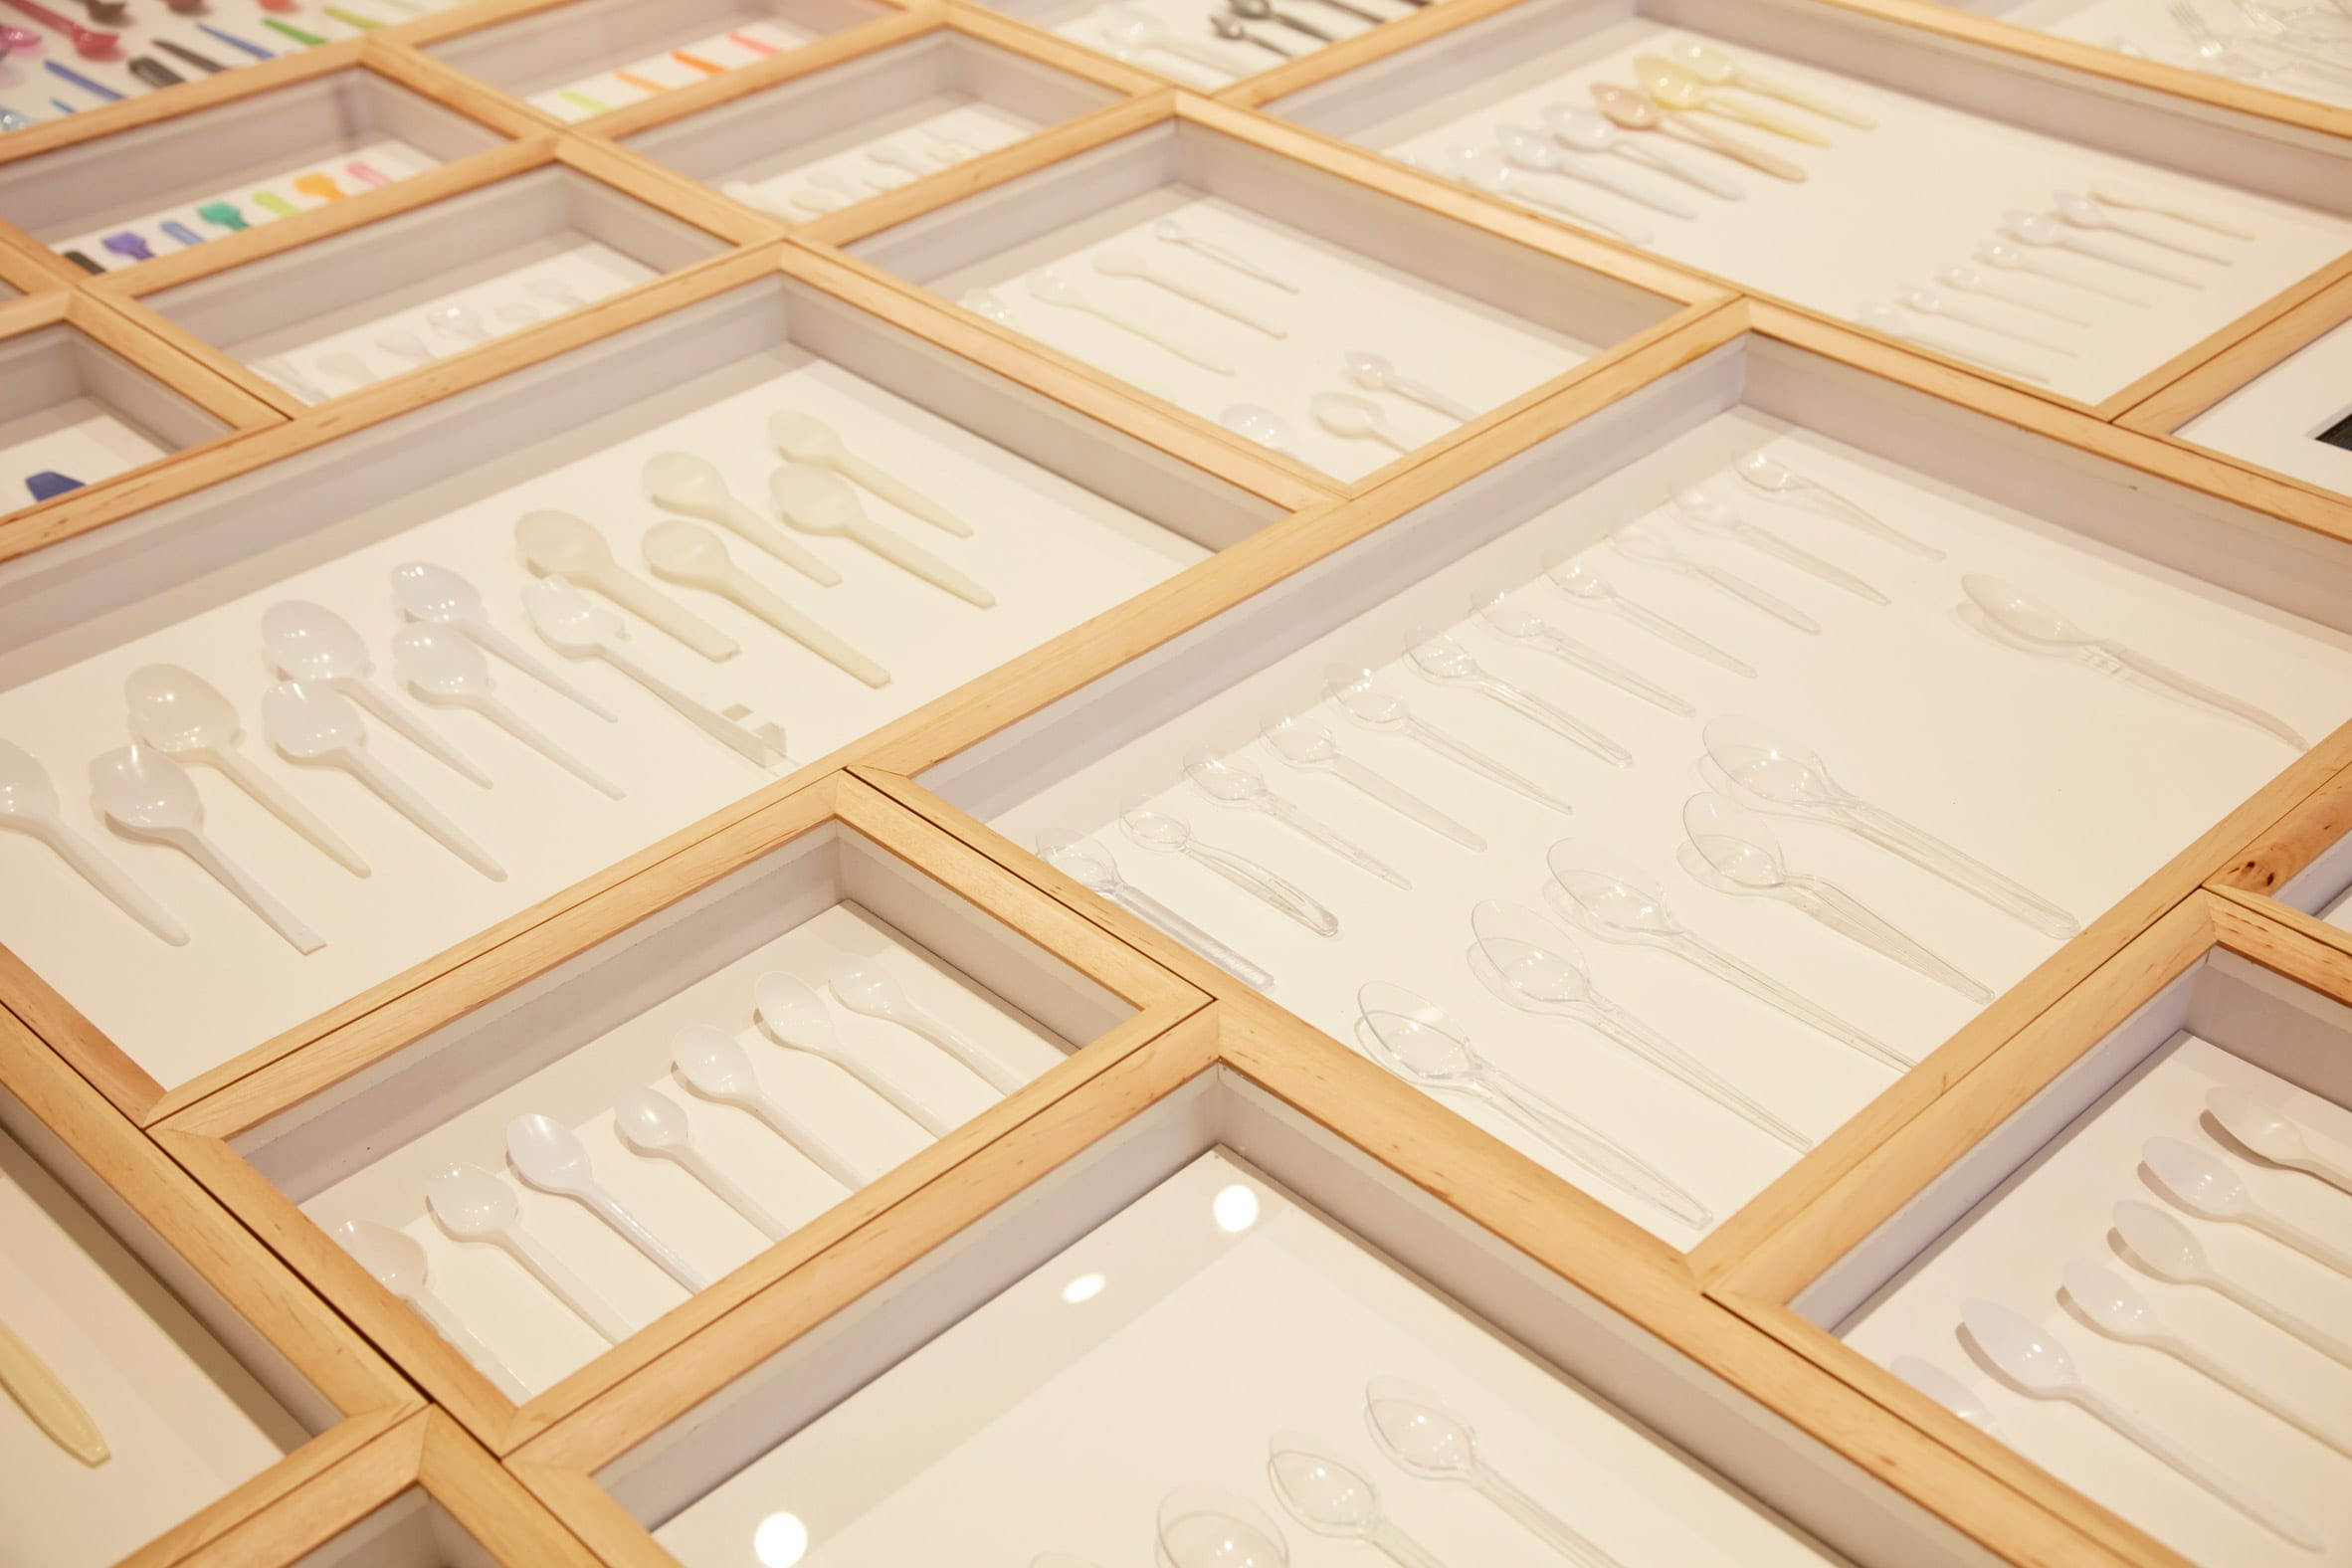 White spoons are displayed at exhibition